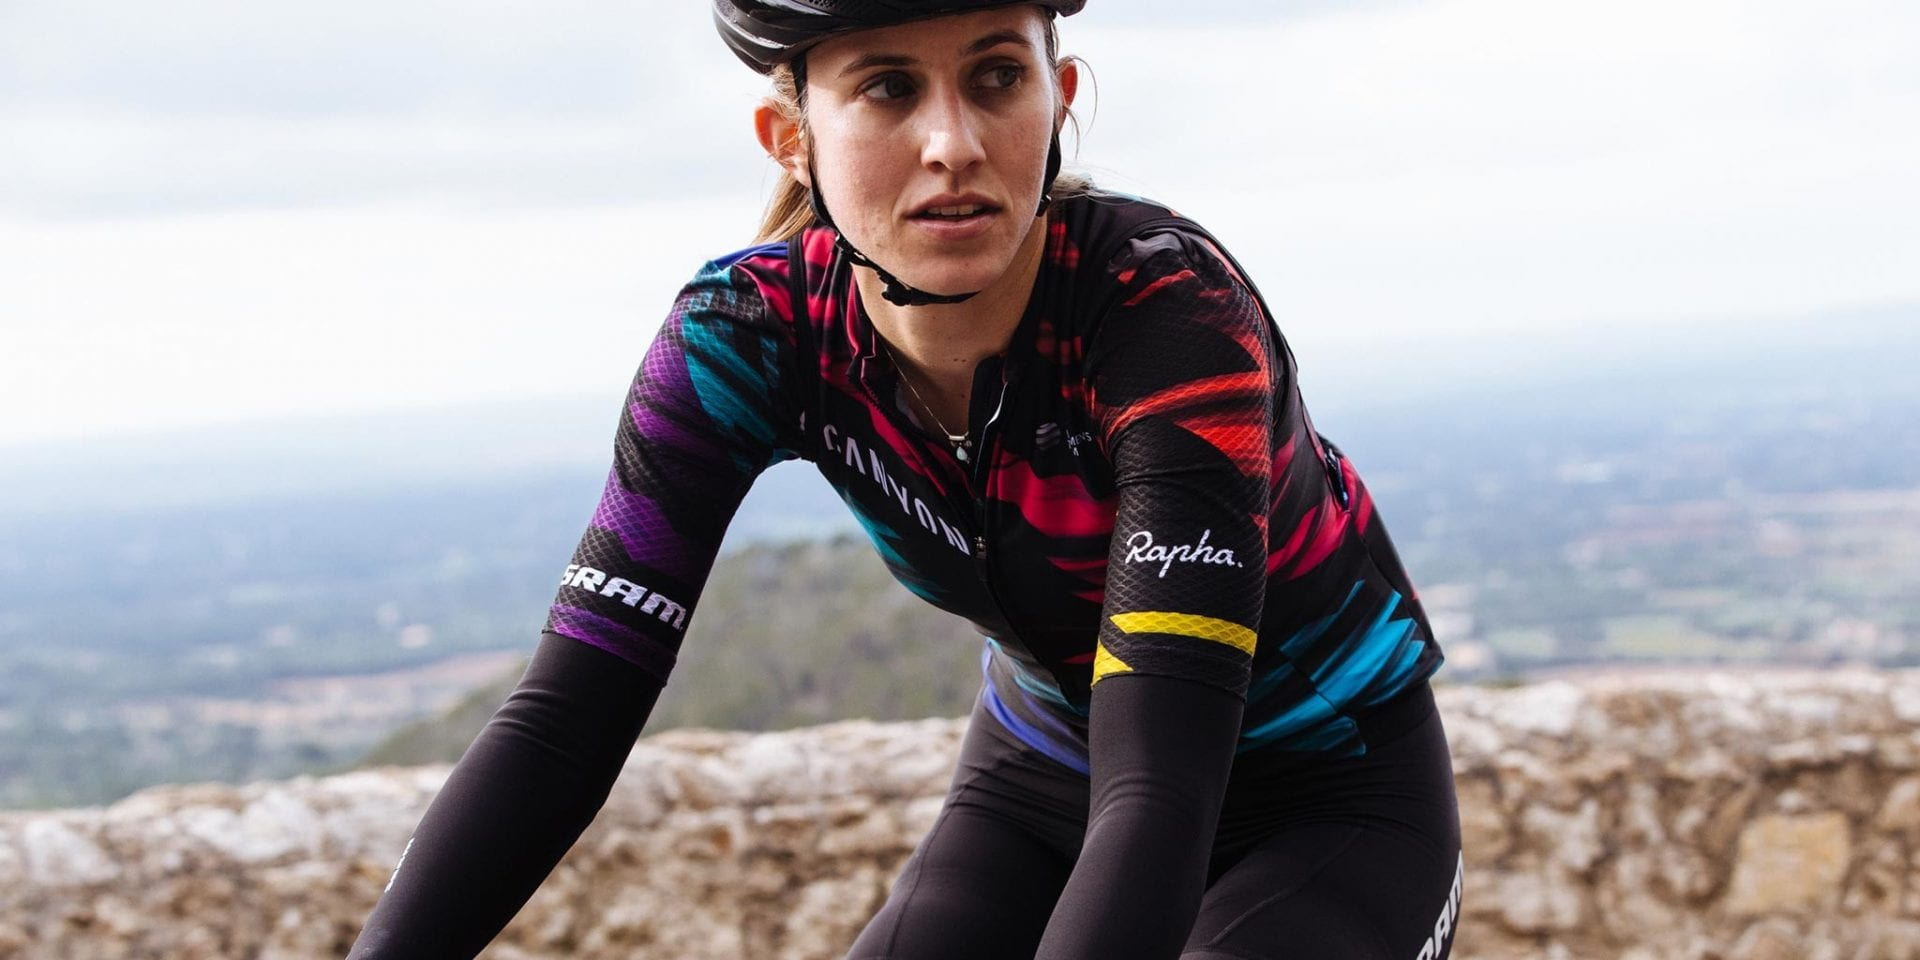 CANYON//SRAM official team kit makes its debut